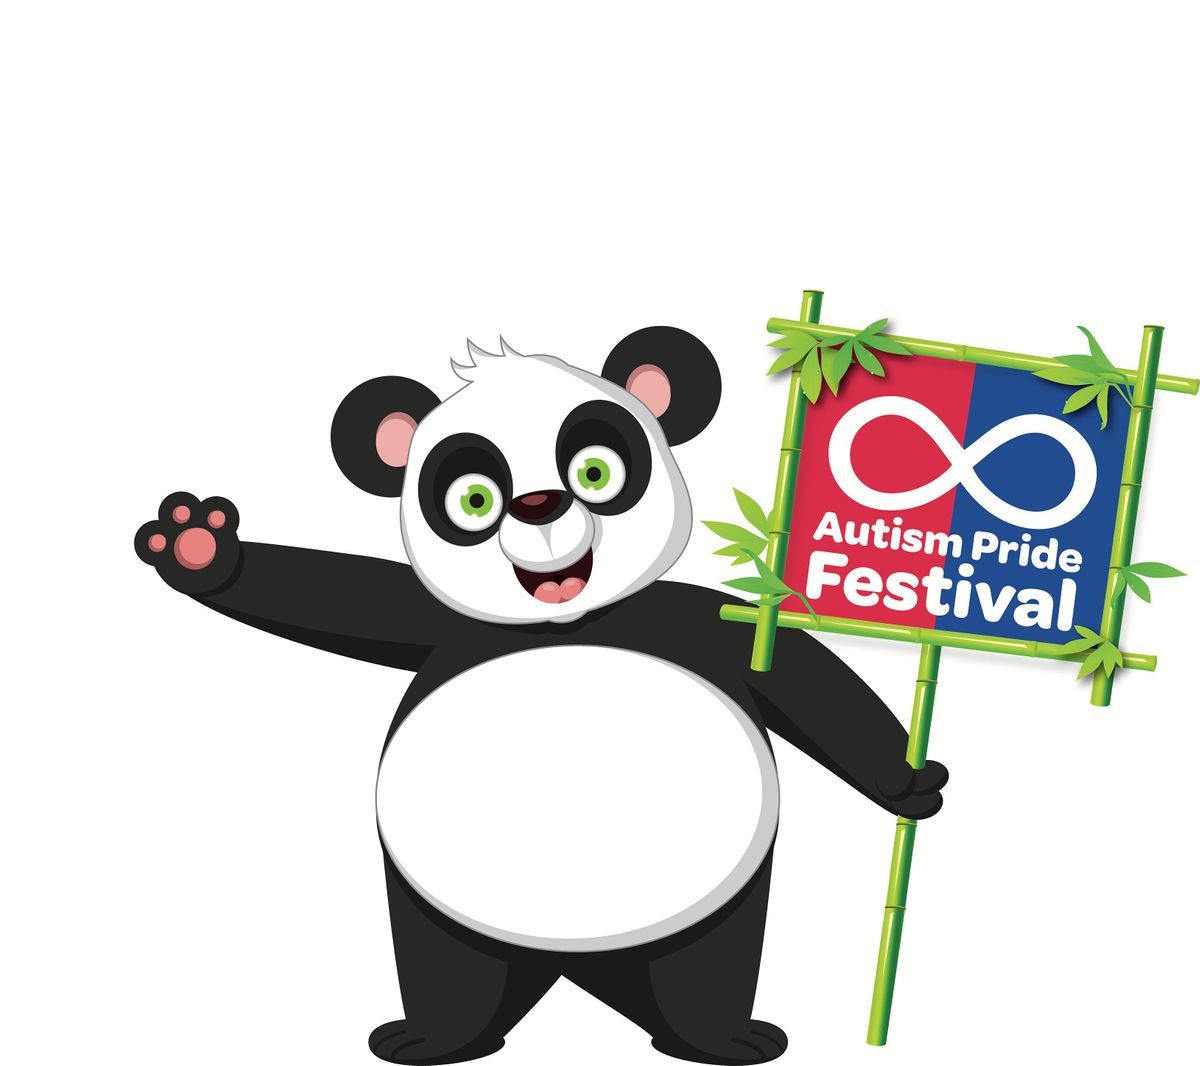 Autism Pride Festival - Family Fun Day 2021, 18 June | Event in Griffithstown | AllEvents.in